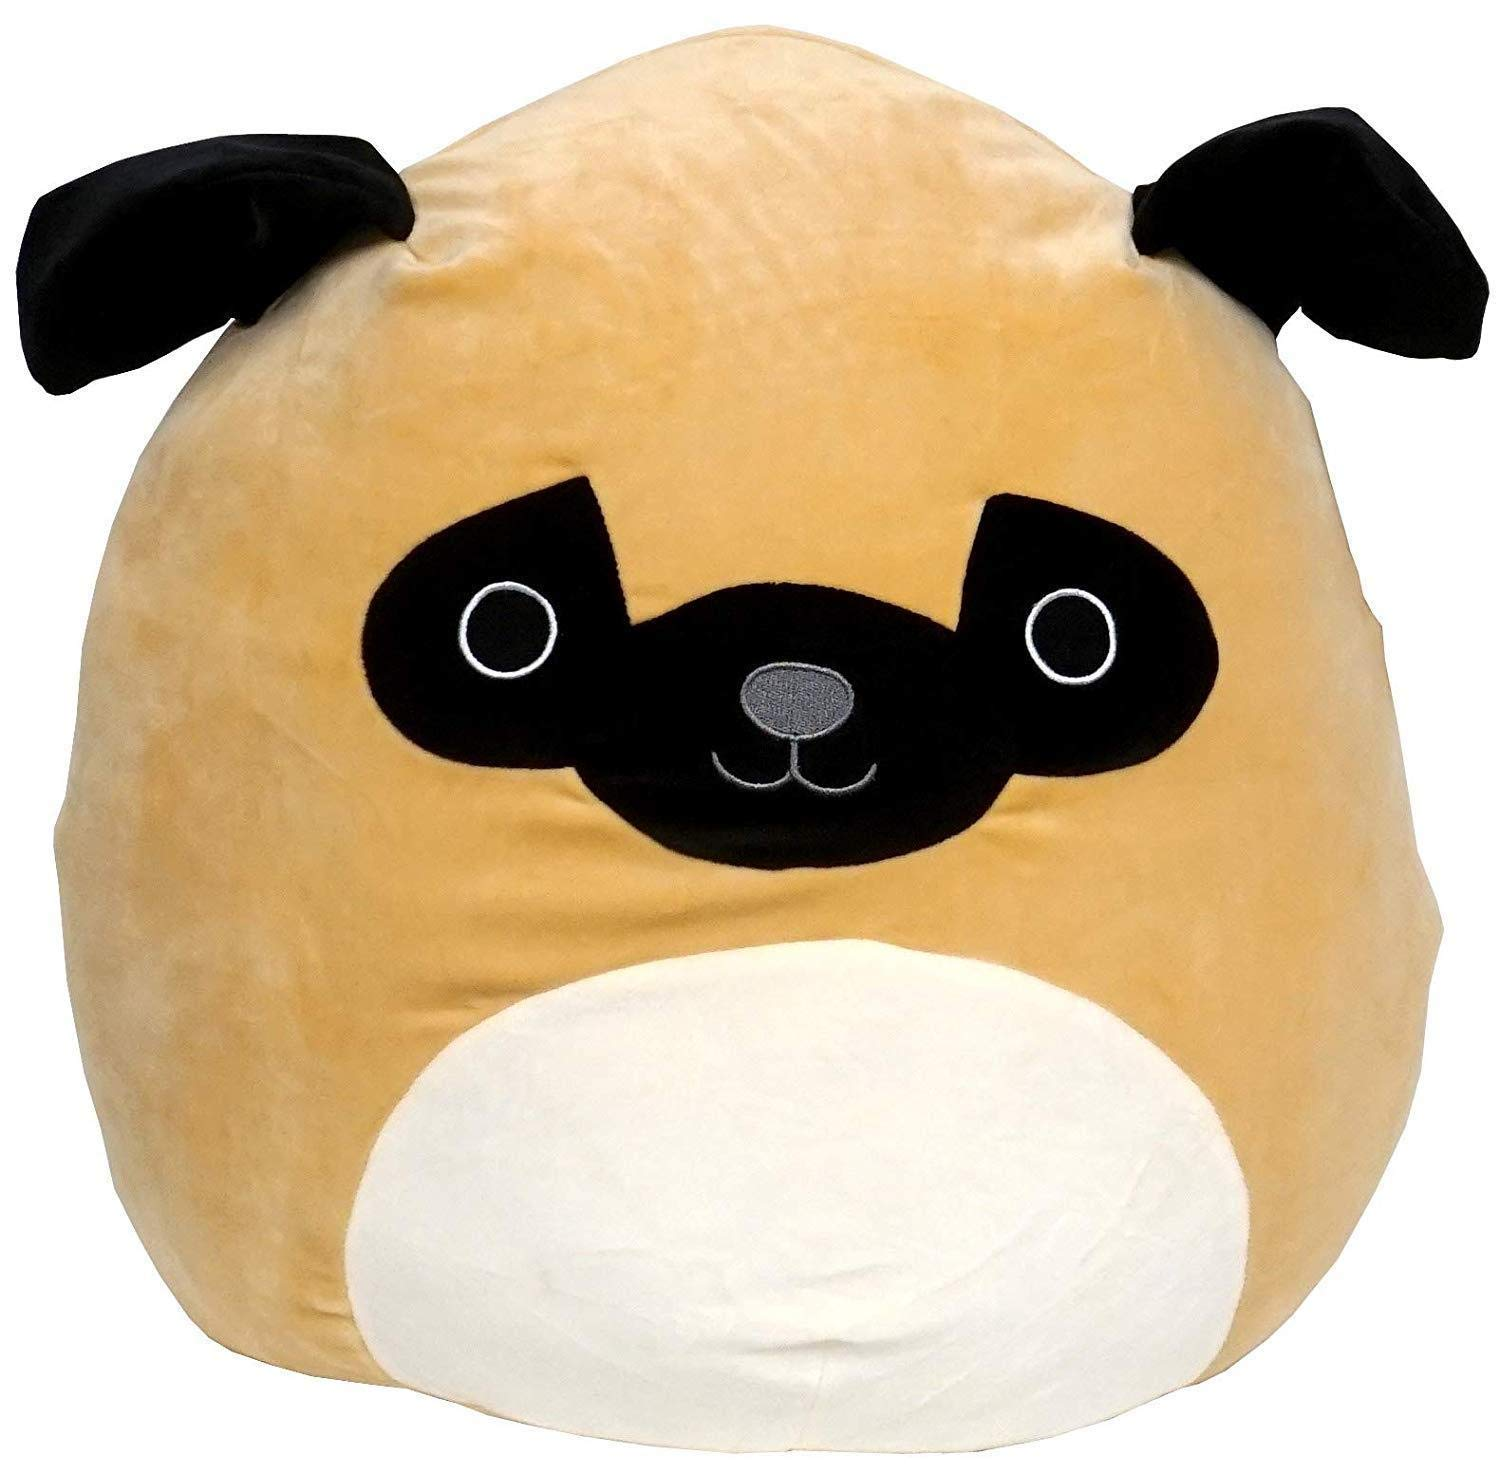 Kelly Toy Squishmallows 5 inch Pug Plush